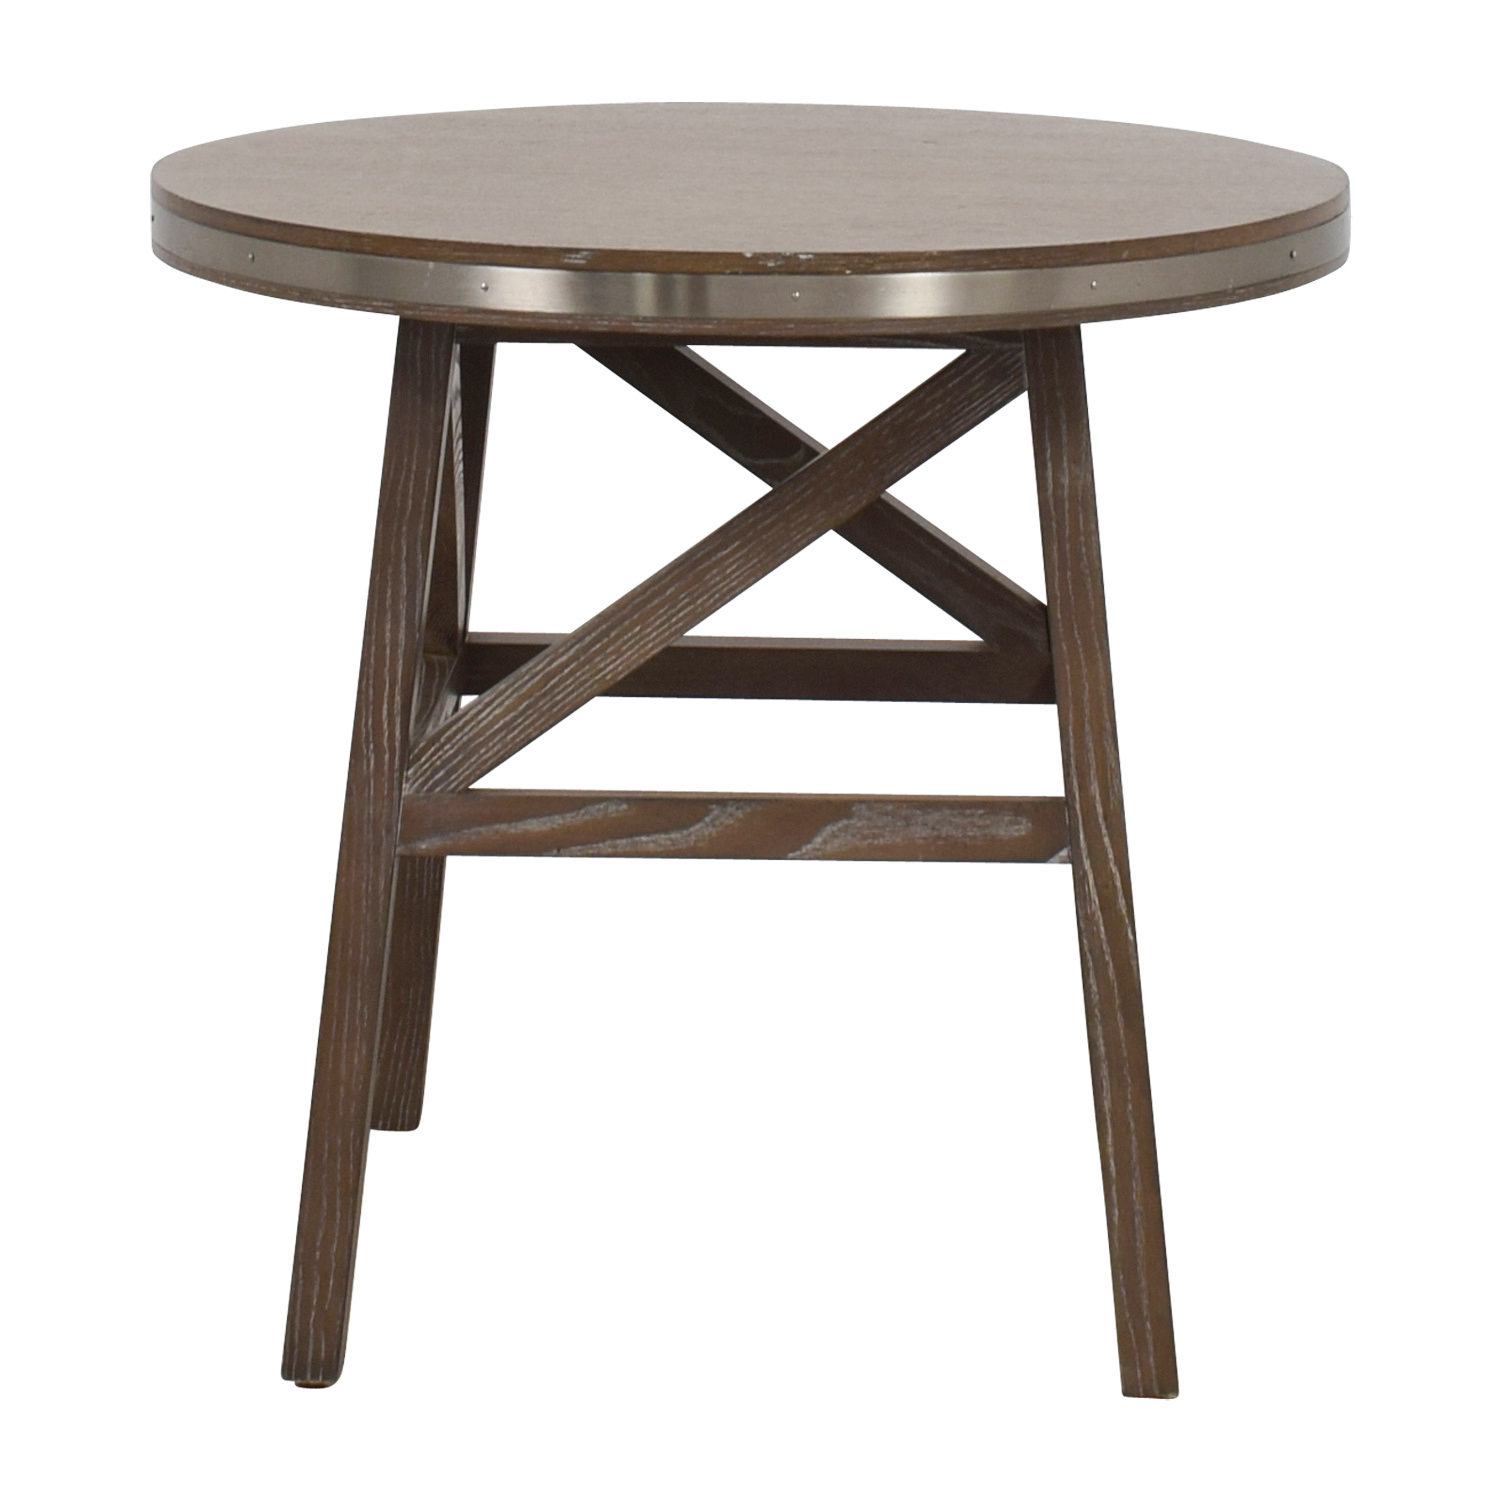 Mitchel Gold + Bob Williams Mitchel Gold + Bob Williams Round Wood Side Table second hand